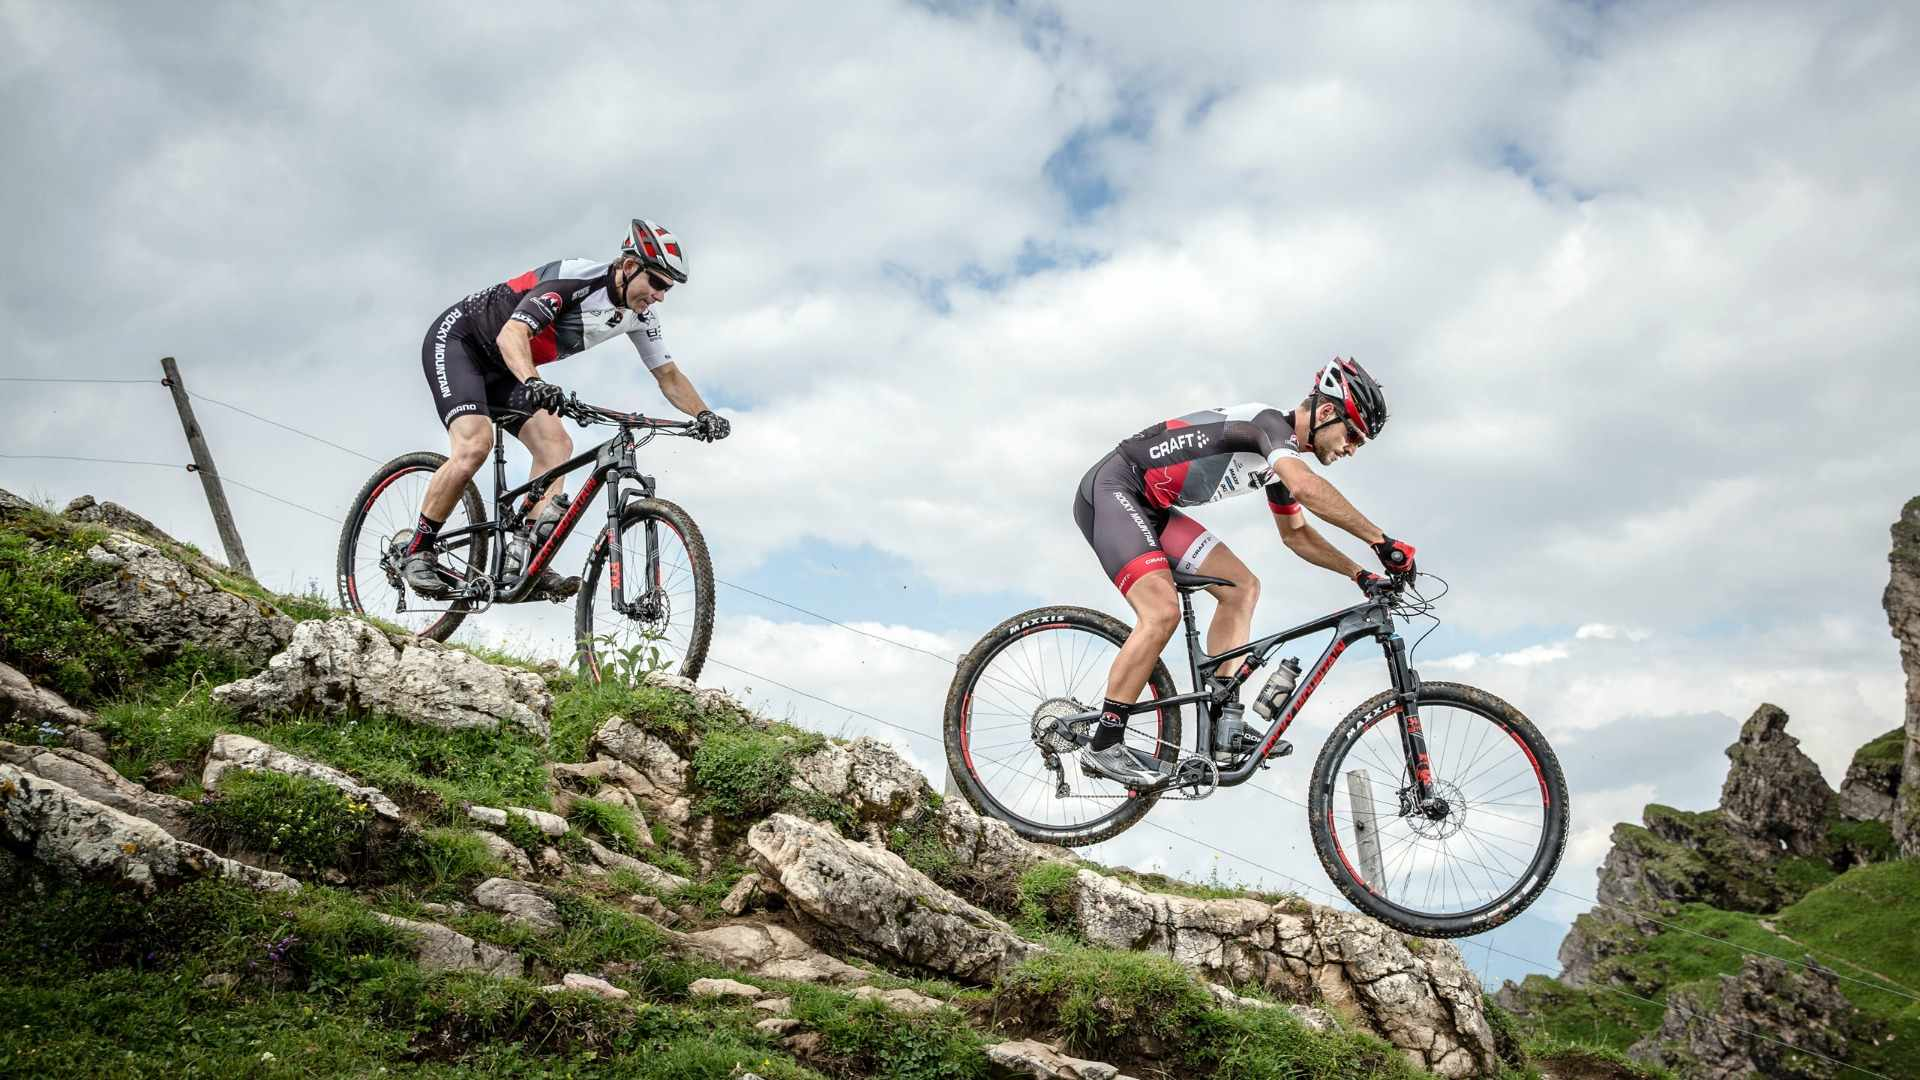 The new, updated, redesigned Rocky Mountain Element range